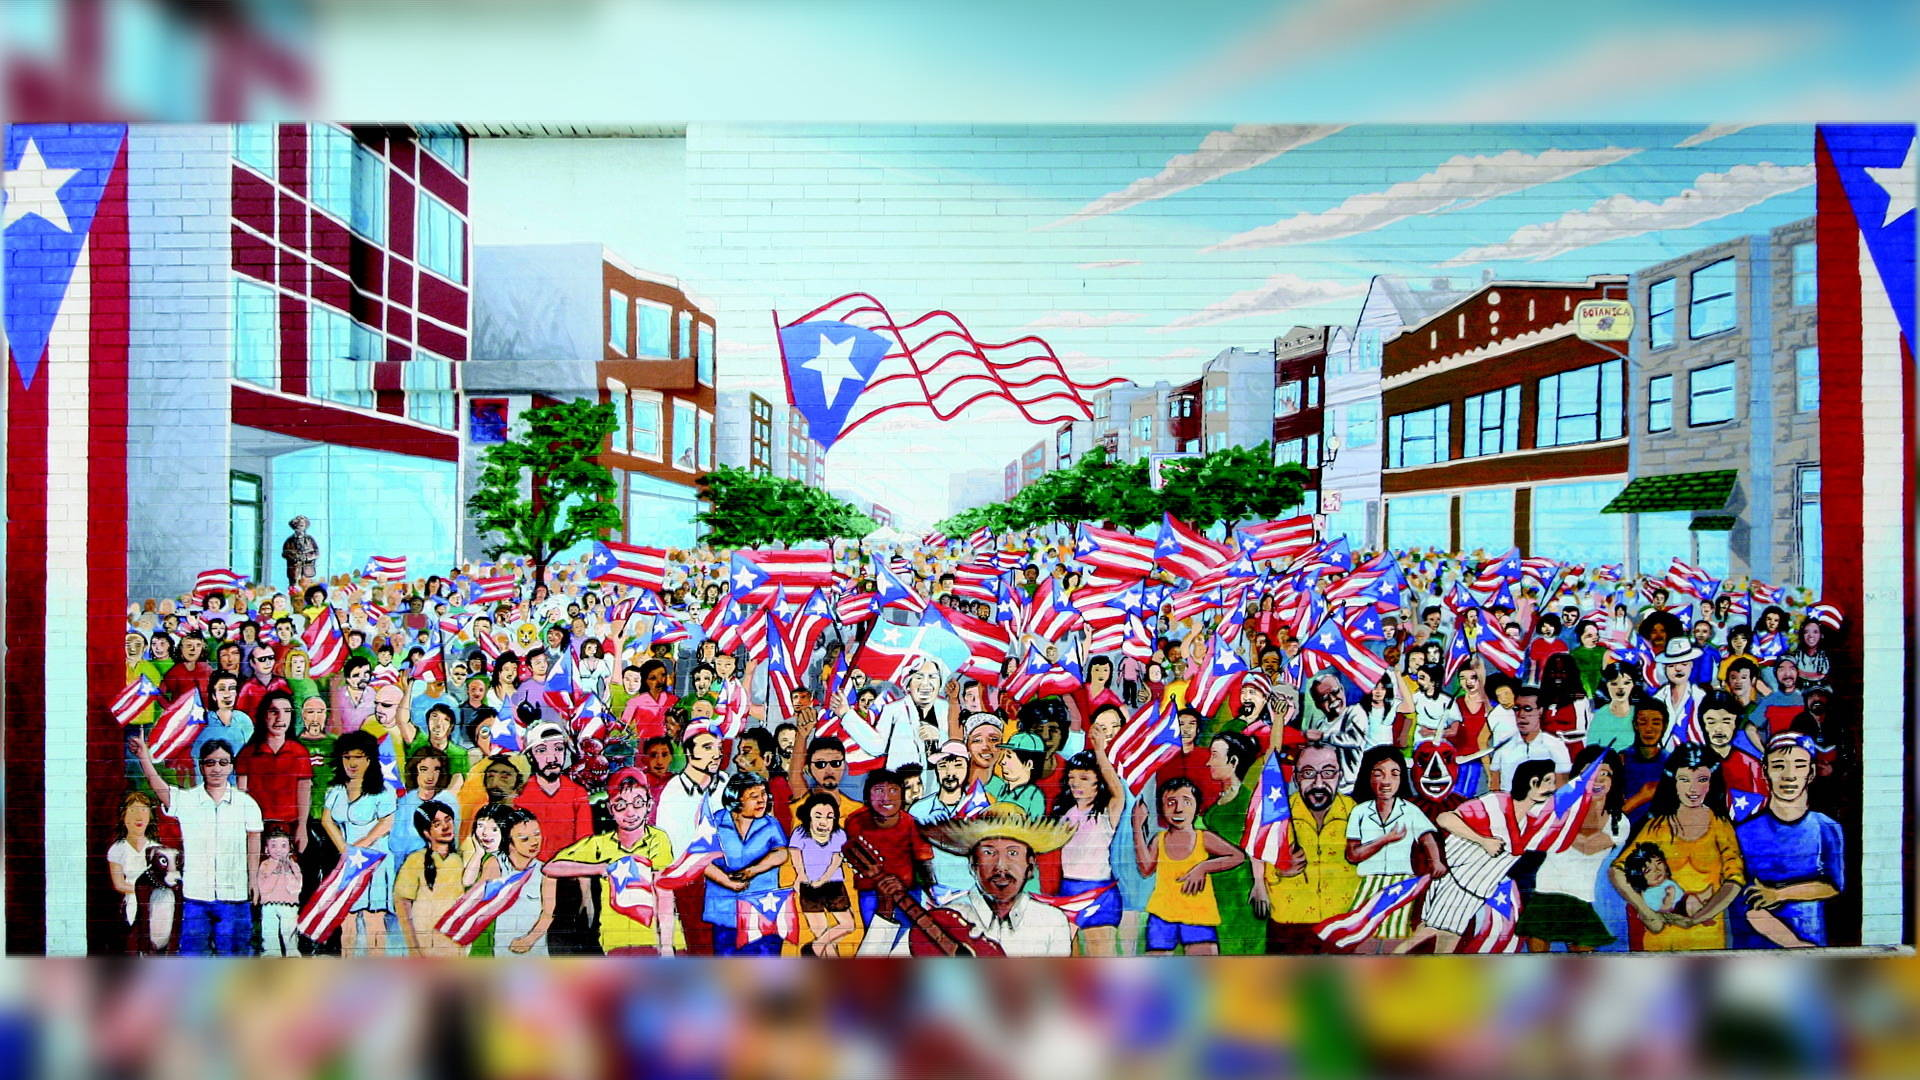 Puerto Rico Flag Wallpaper Hd National Puerto Rican Agenda New Group Forms To Address